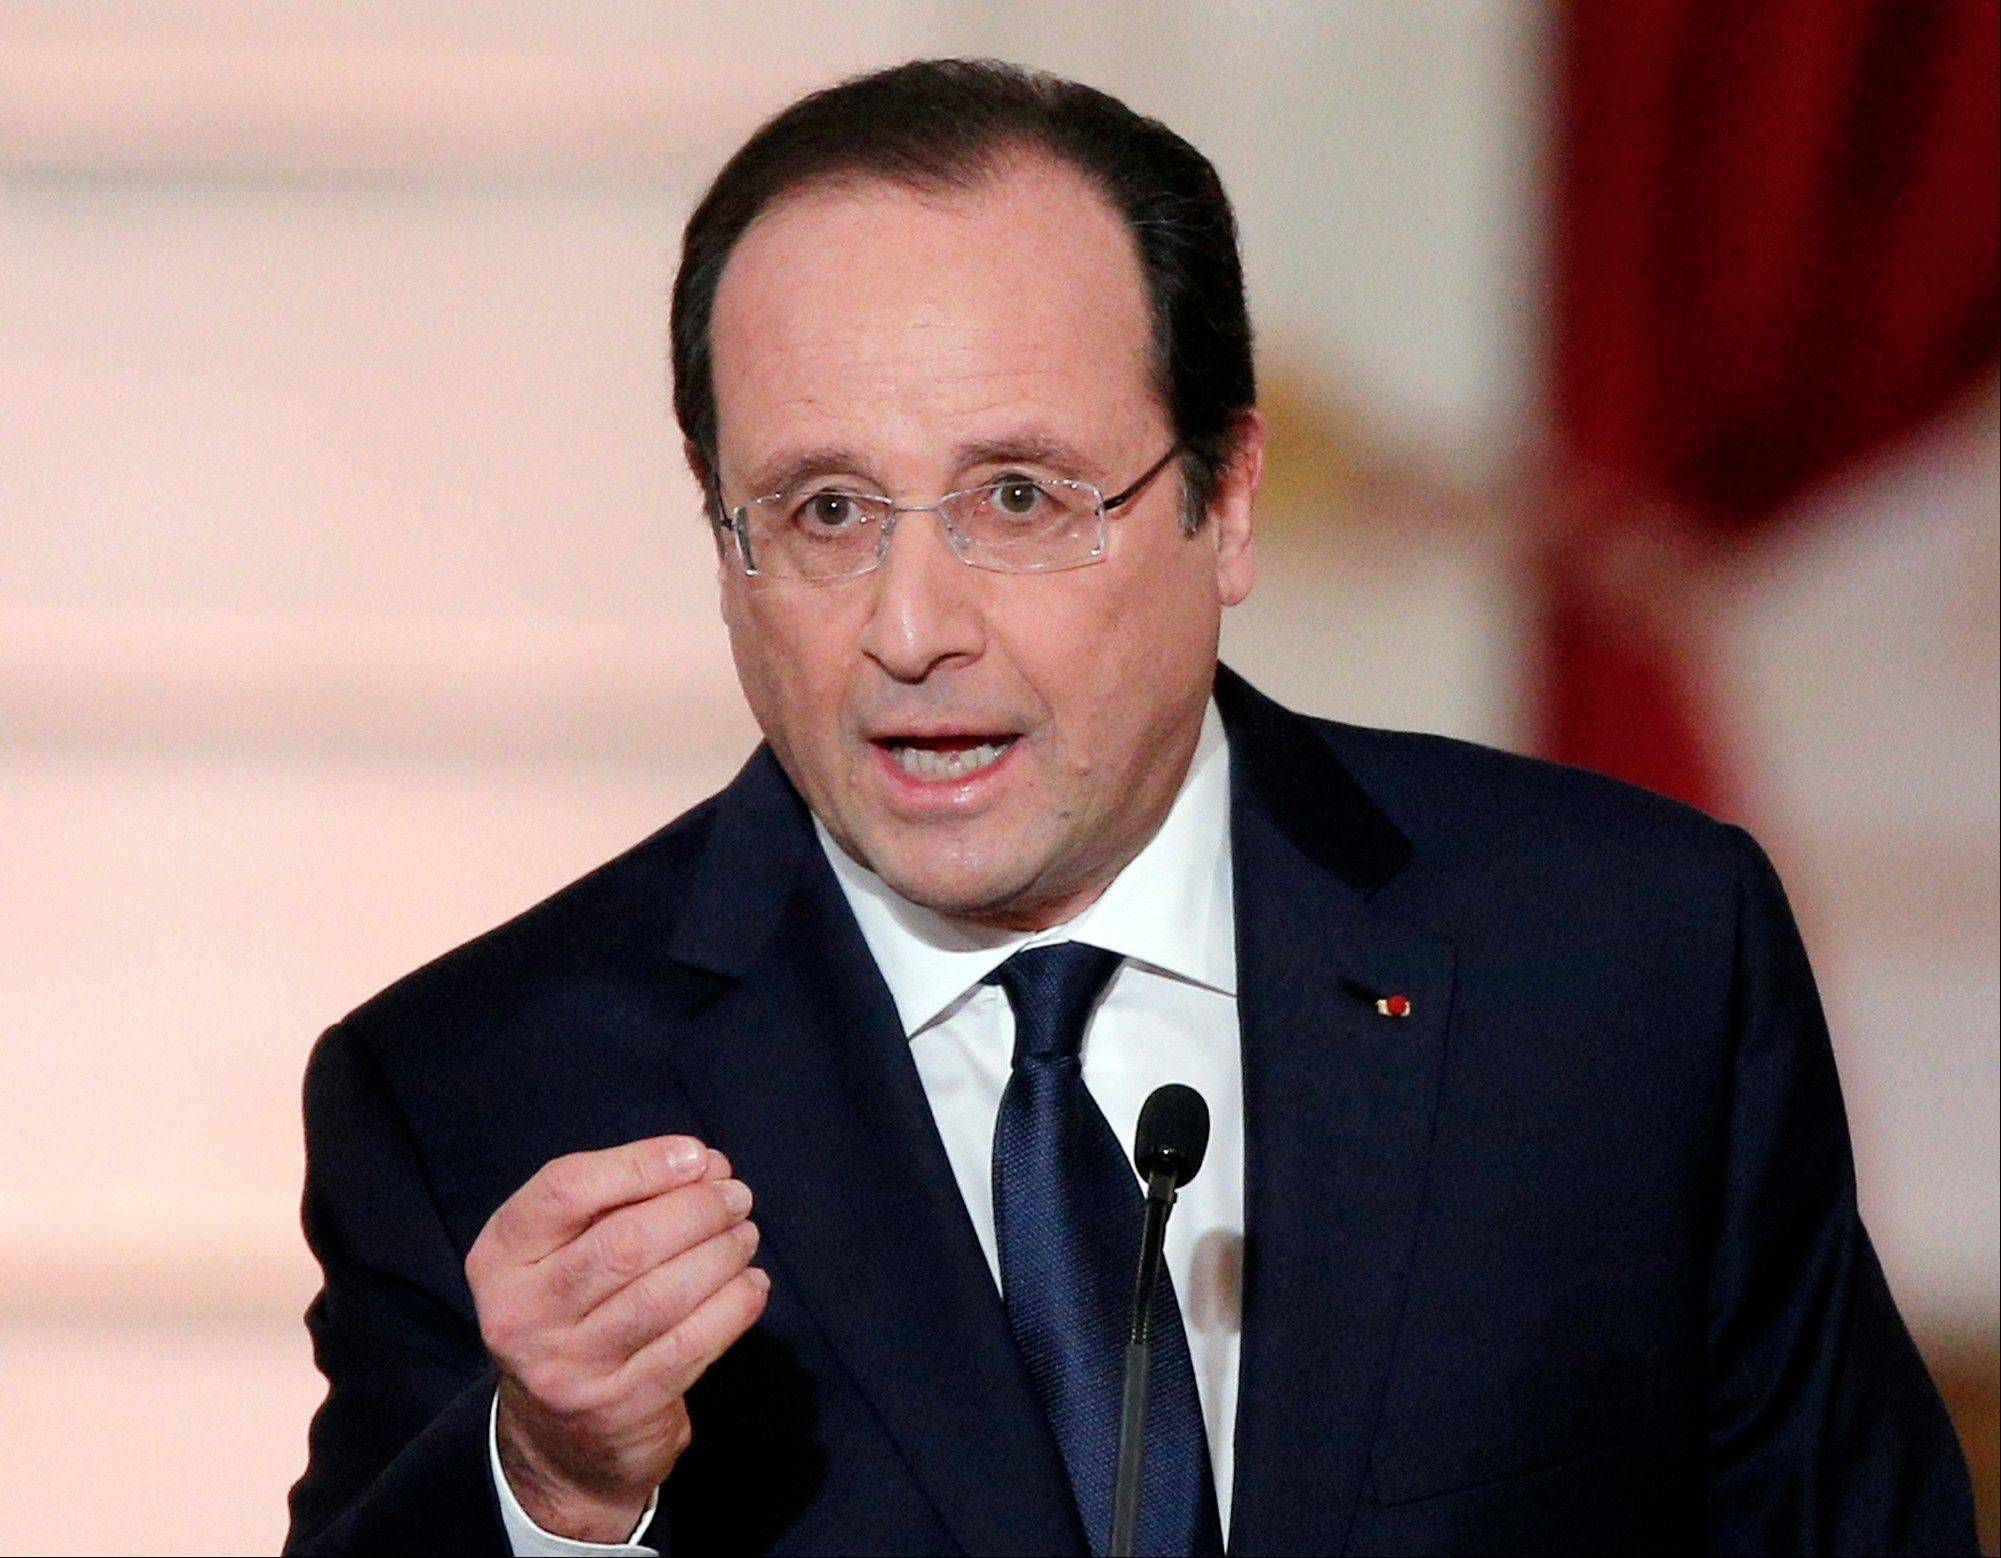 French President Francois Hollande�s complex personal life � and what it means to be the first lady in modern society � received a full airing as he answered questions for the first time since a tabloid reported he was having an affair with an actress.